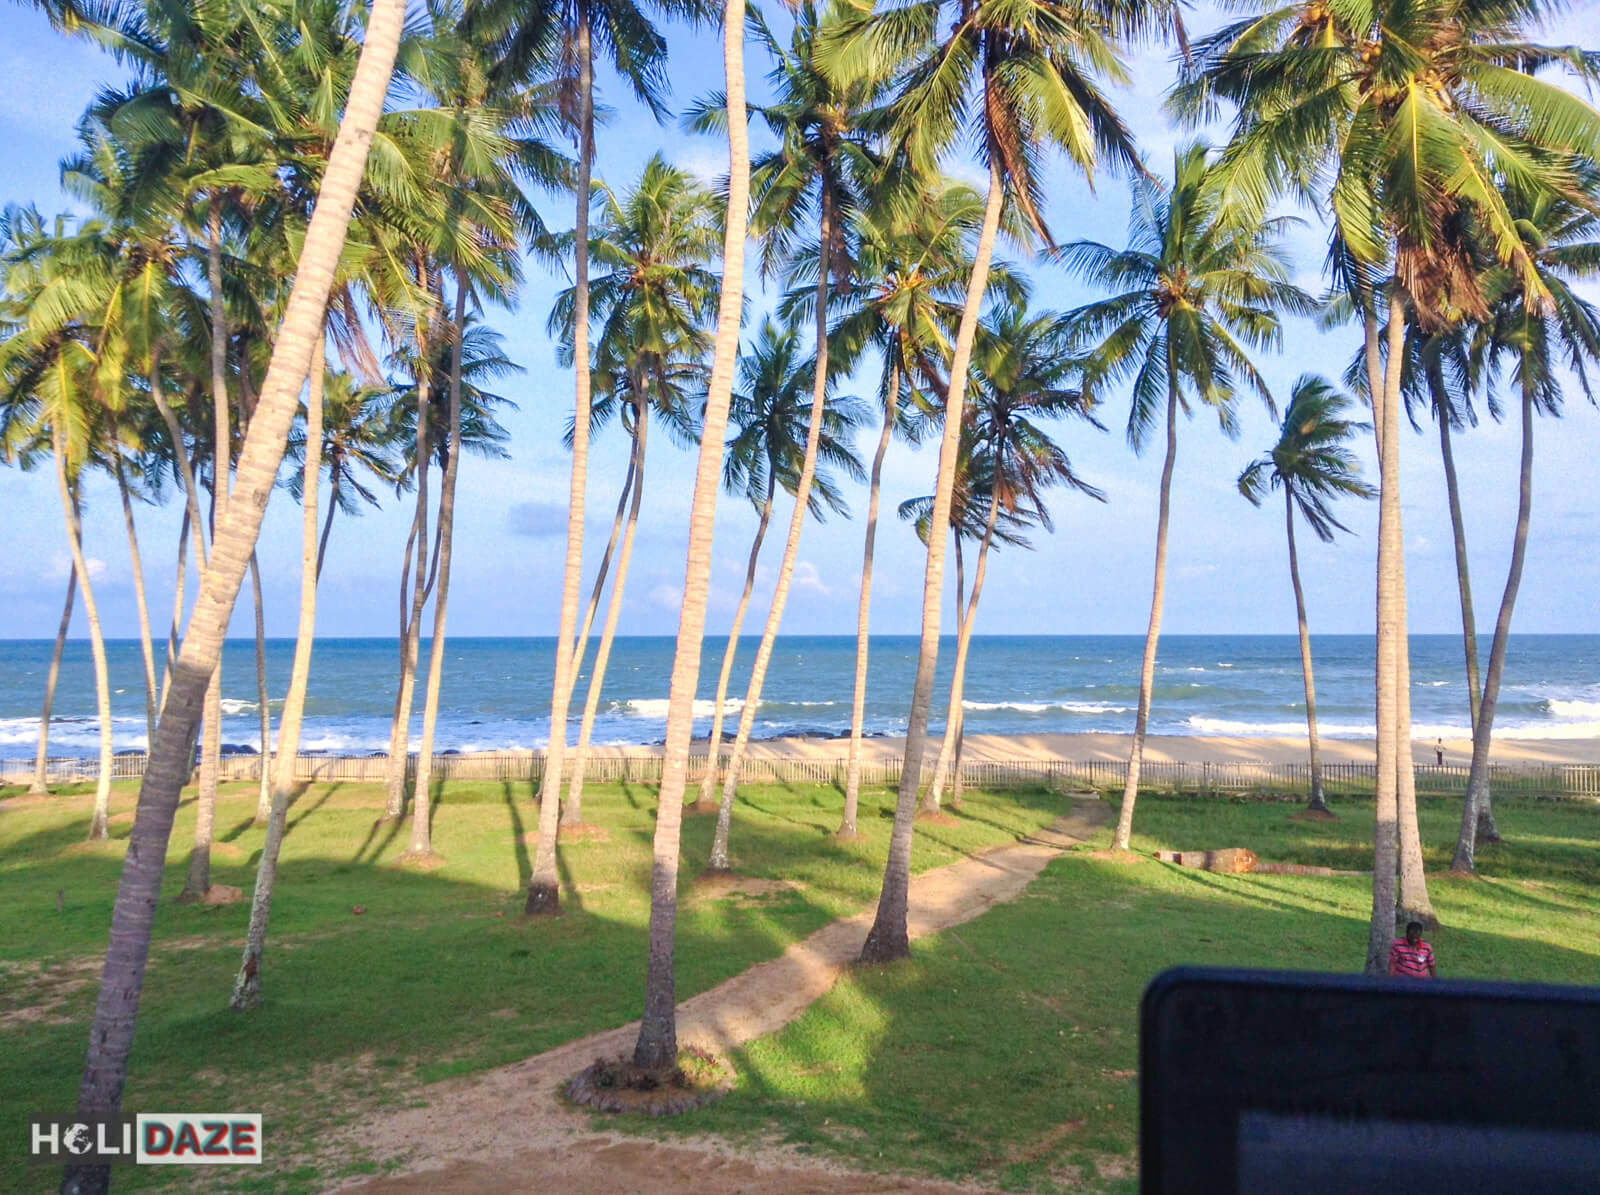 View from my private villa in Arugam Bay, Sri Lanka